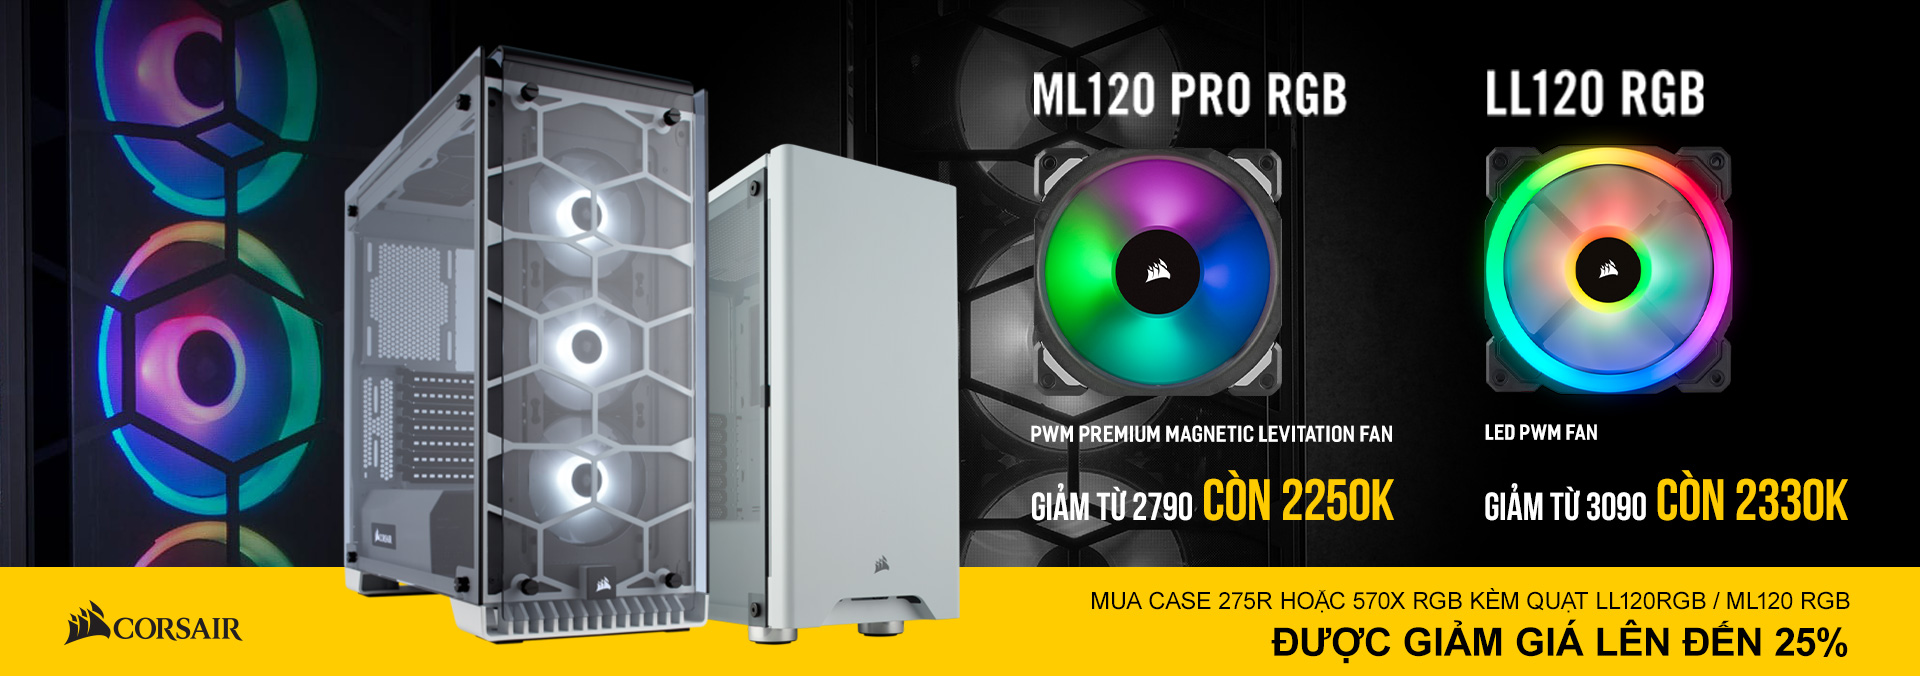 CORSAIR SALE OFF 25%